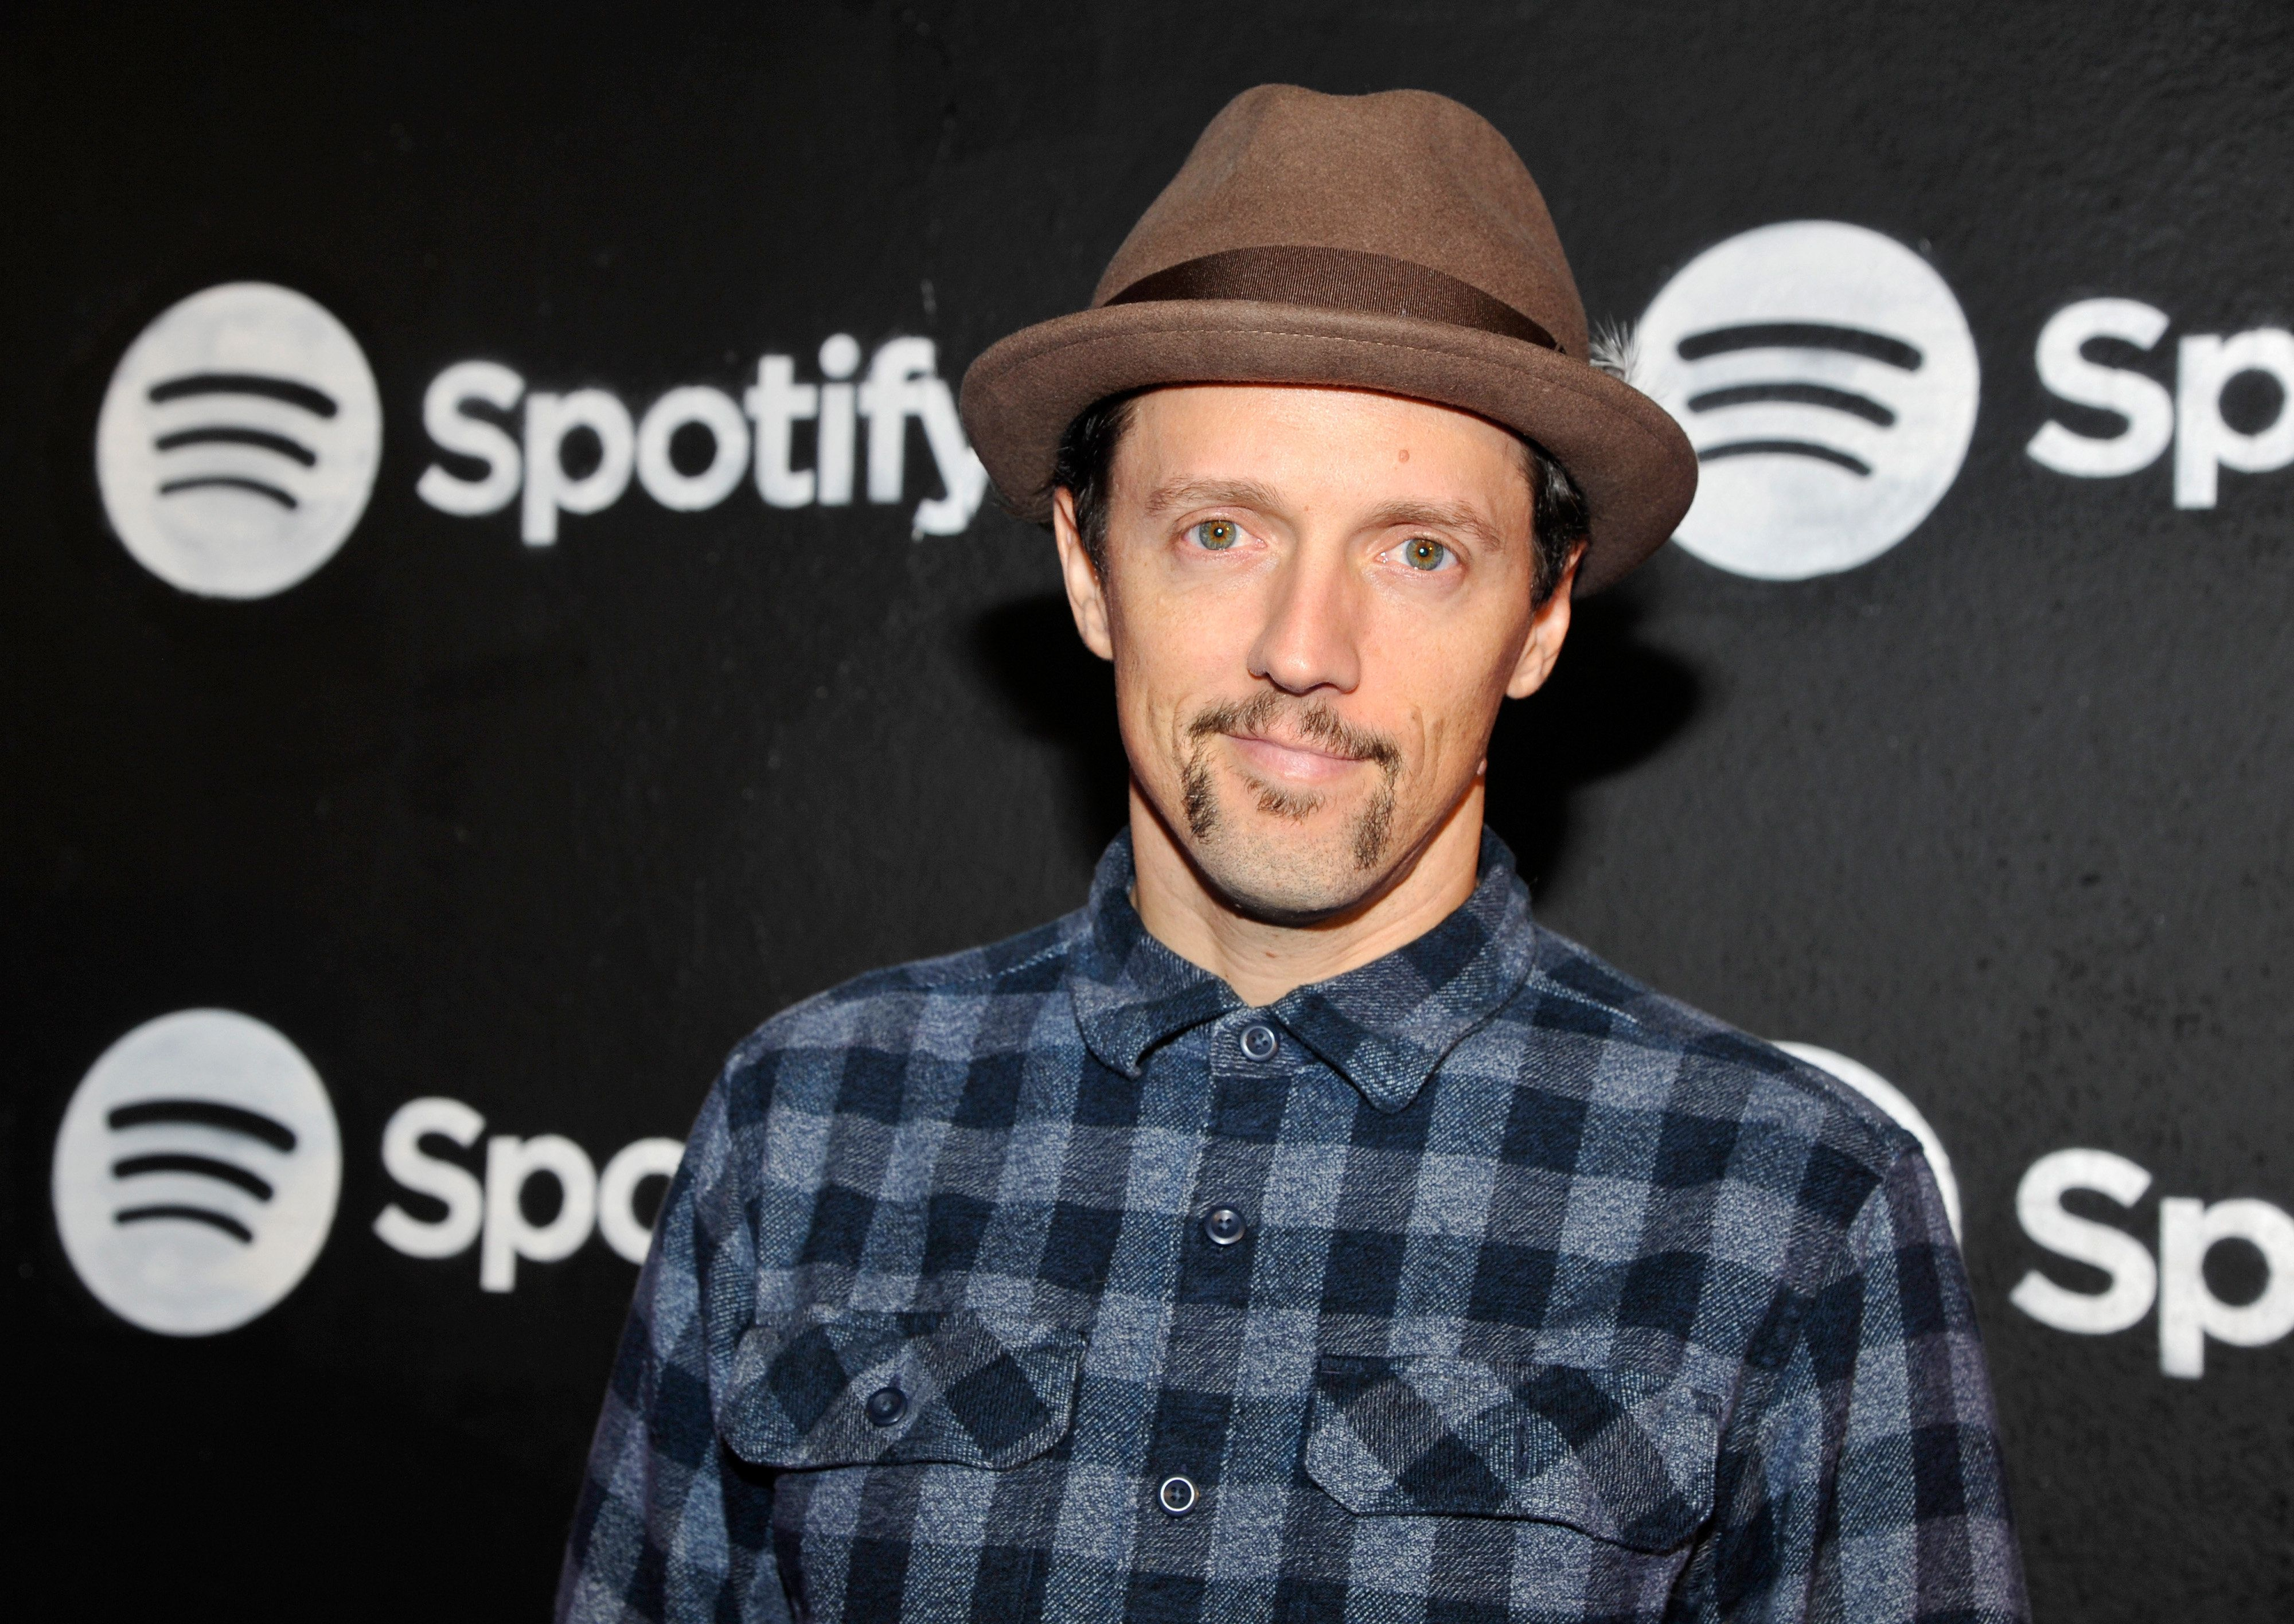 LOS ANGELES, CA - FEBRUARY 09:  Singer/songwriter Jason Mraz attends the Spotify Best New Artist Nominees celebration at Belasco Theatre on 9, 2017 in Los Angeles, California.  (Photo by John Sciulli/Getty Images for Spotify)